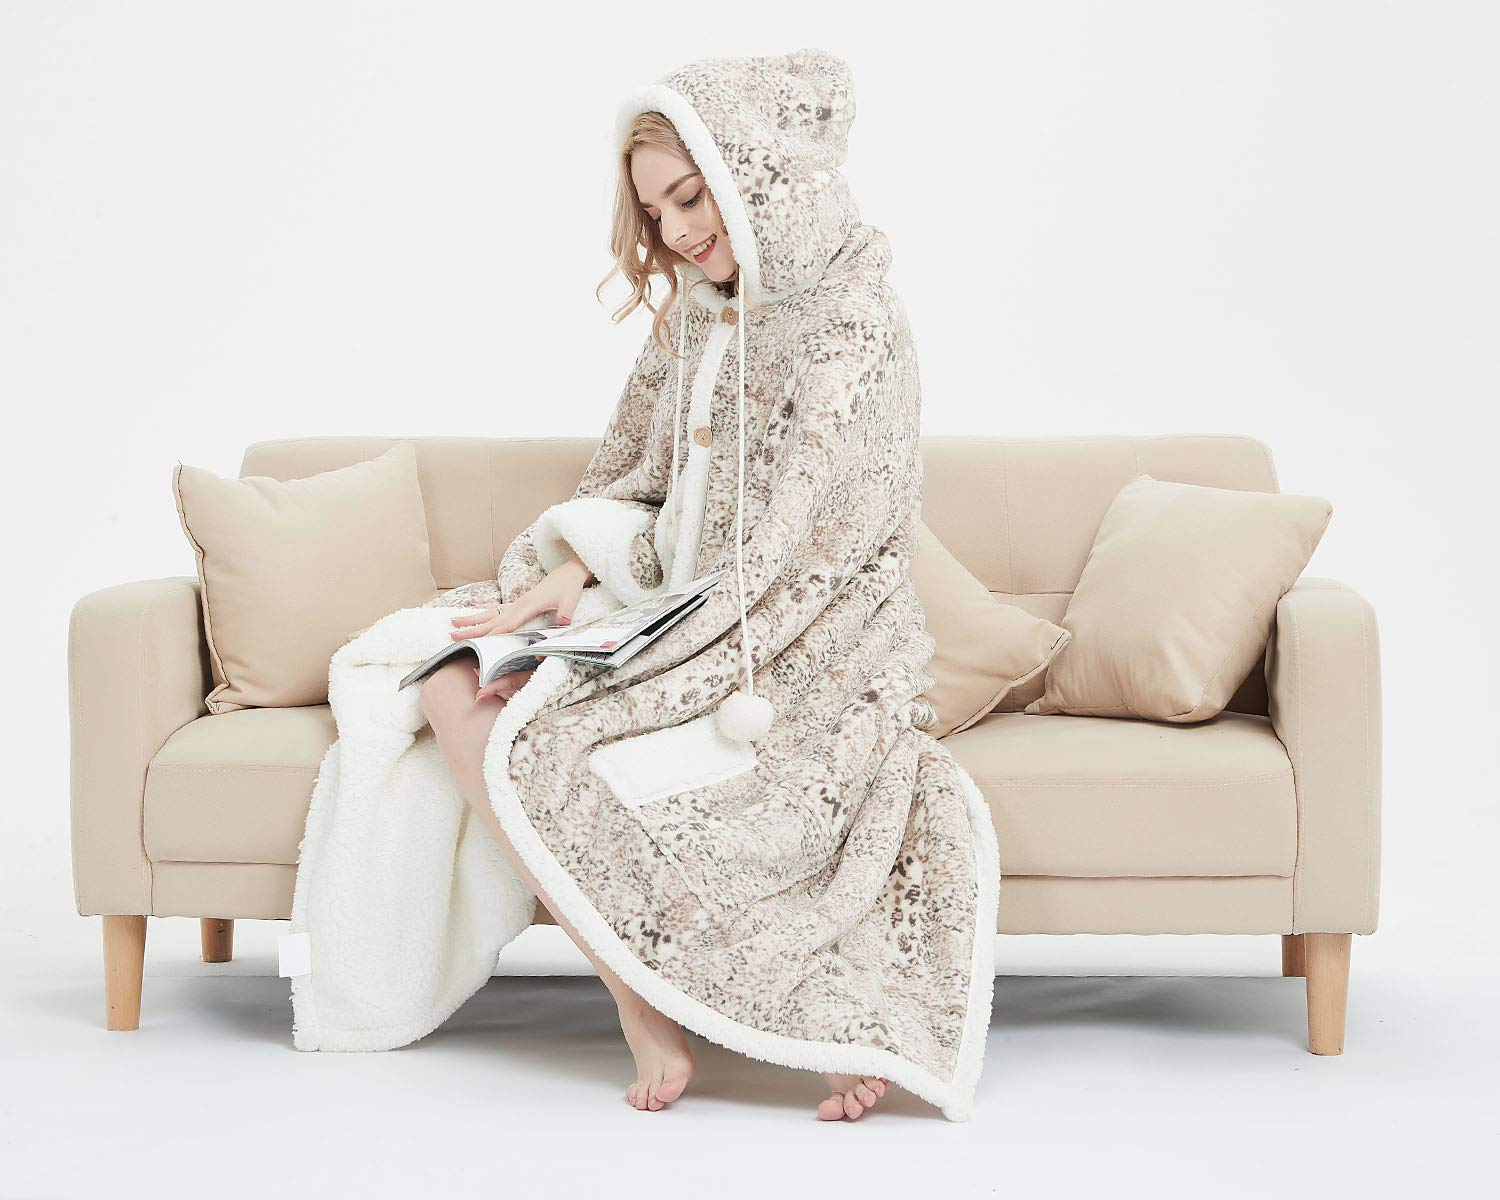 MARQUESS Hoodie Robe Ultra Soft Throw Wrap Plush Coral Fleece & Sherpa Wearable Blanket Animal Print Chic Lifestyle 51 x 71'' (Cream Point)